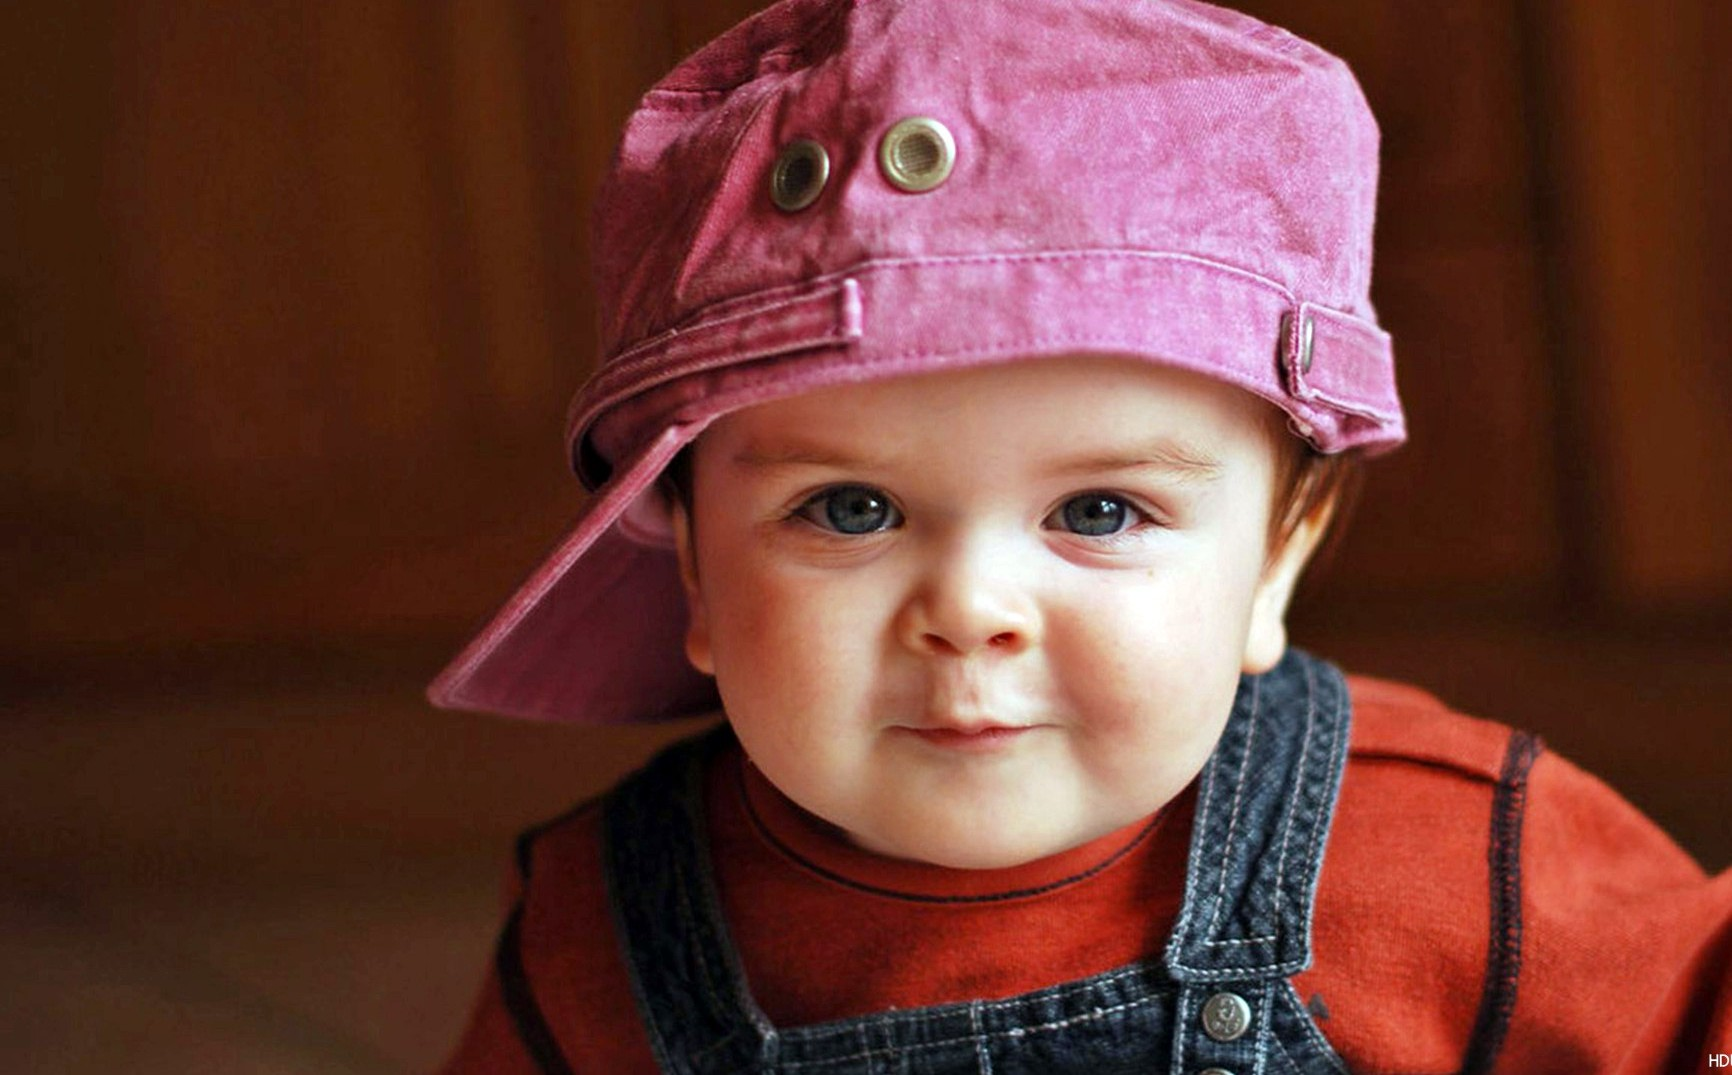 Top Collection Of Cute Baby Boy Wallpapers Cute Baby Pics Hd Free Download 539415 Hd Wallpaper Backgrounds Download